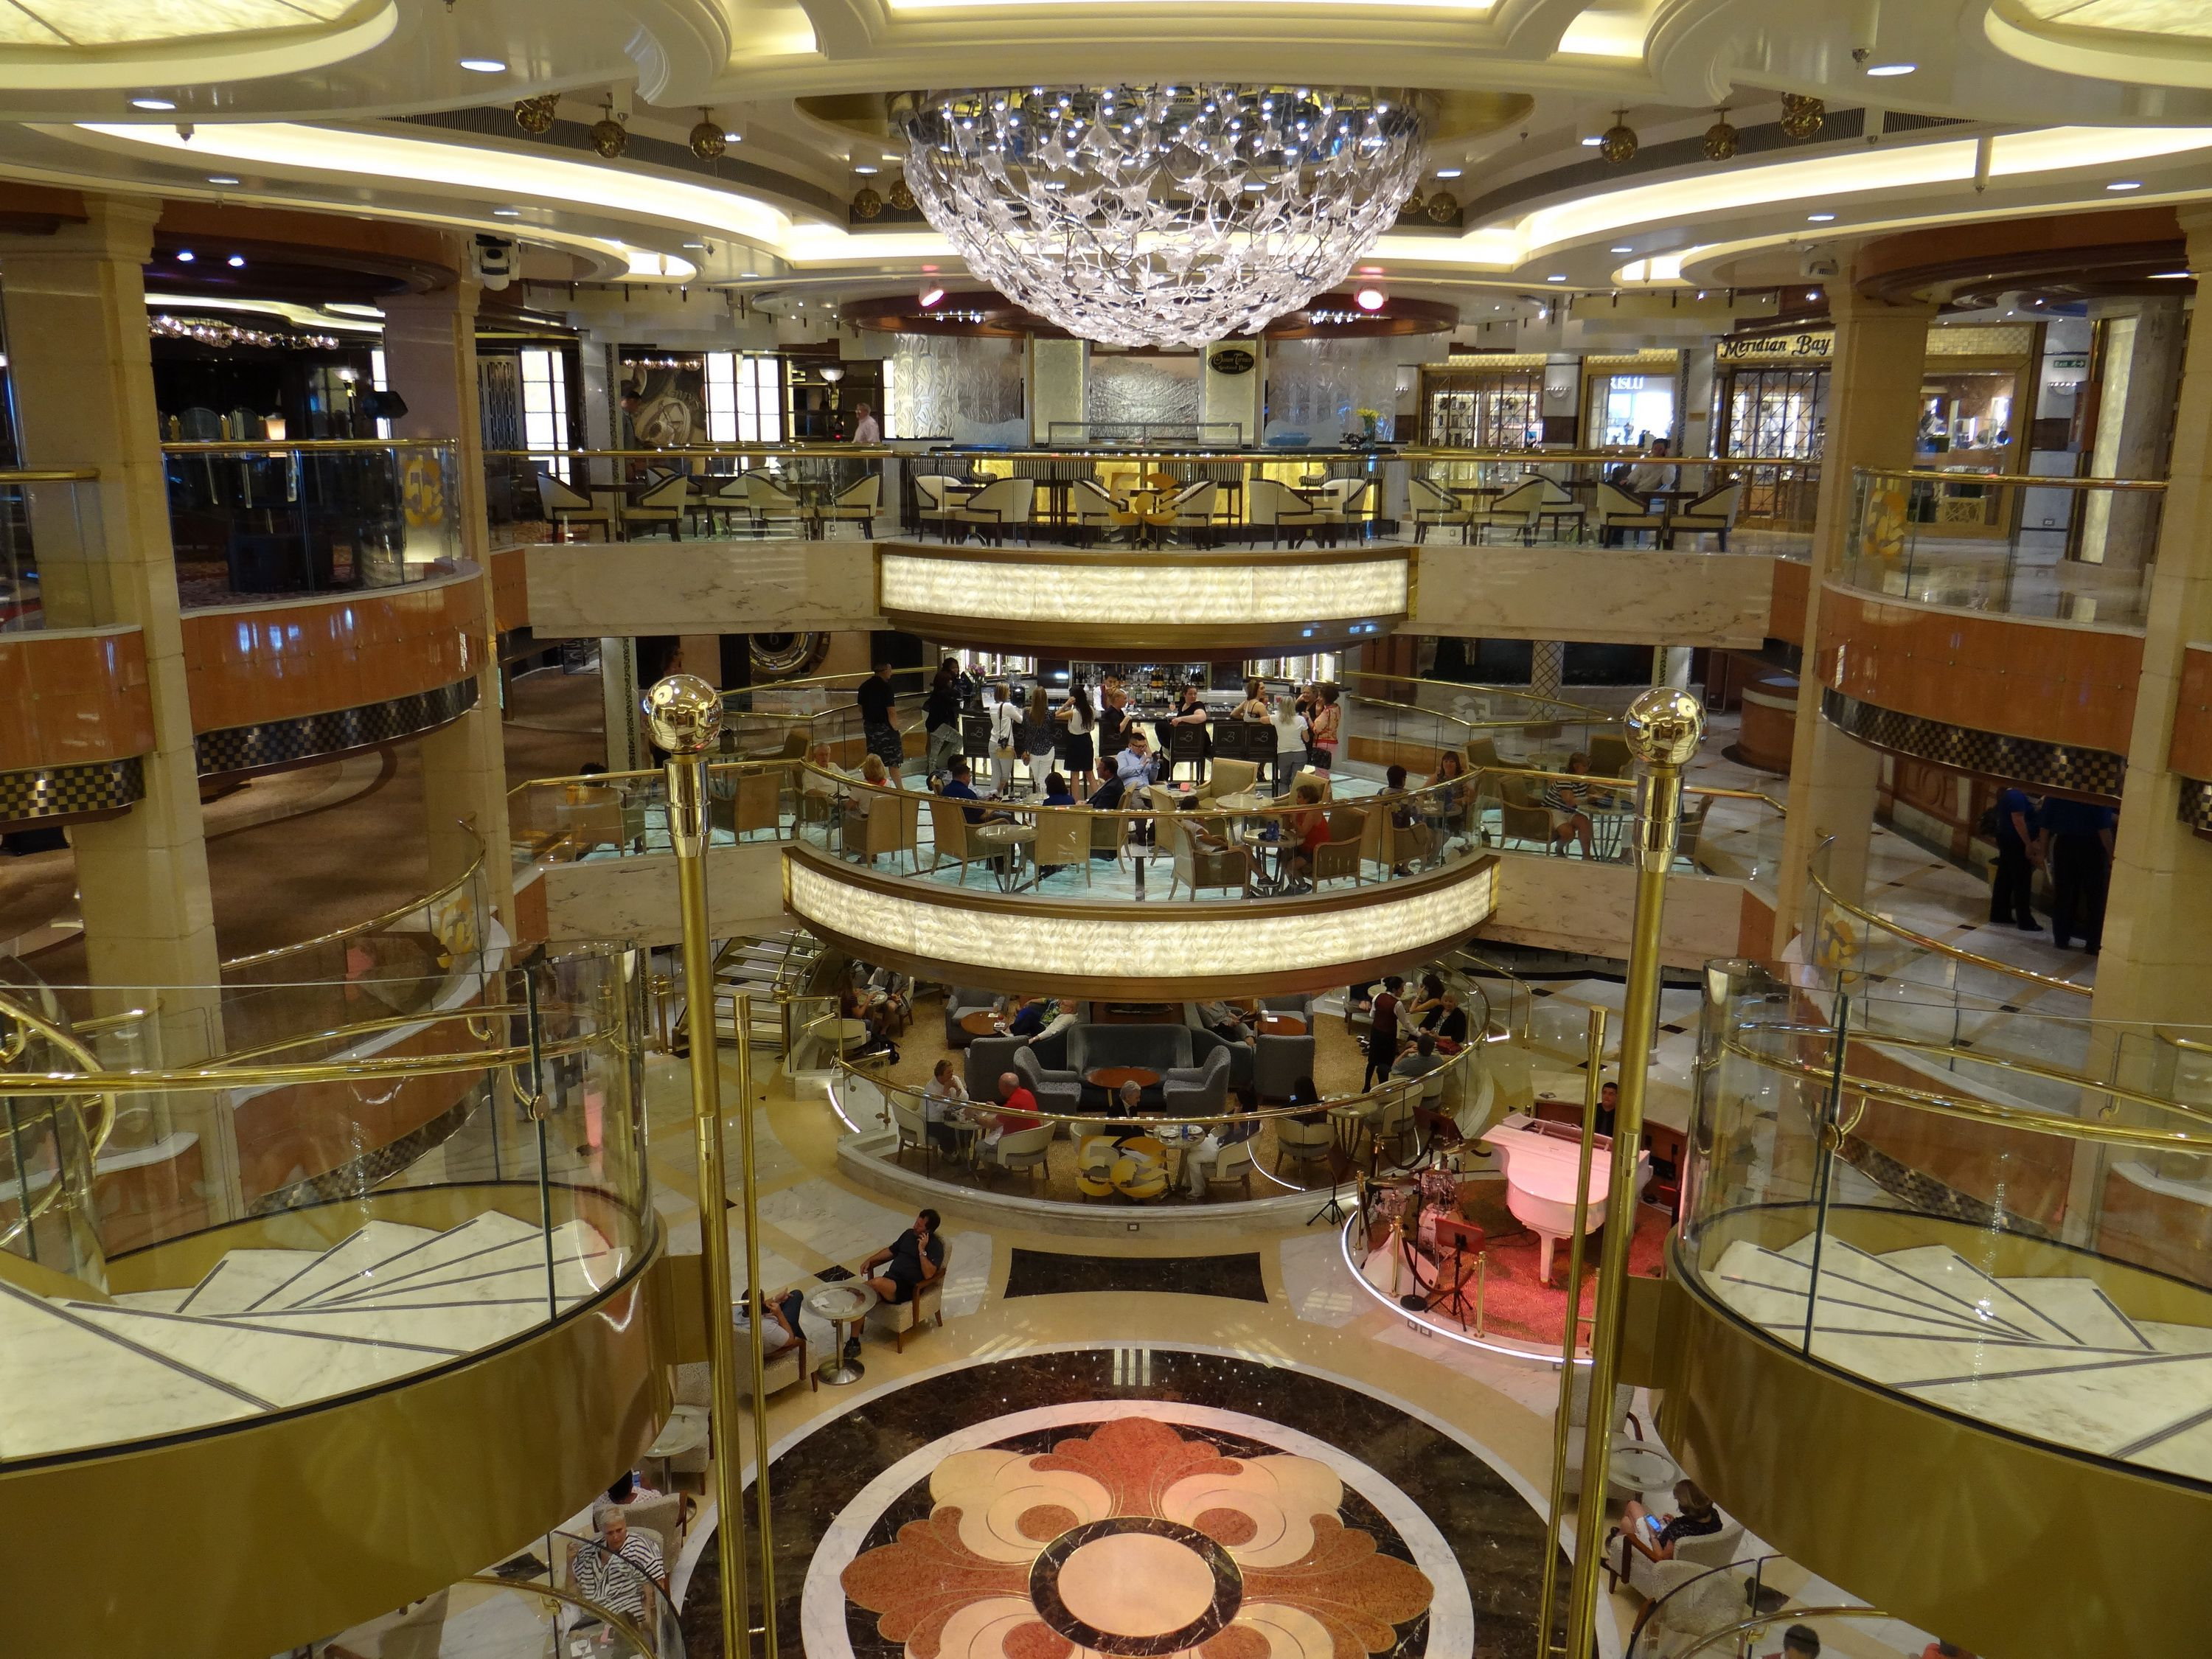 The Regal Princess Piazza and Atrium, as seen from the top deck